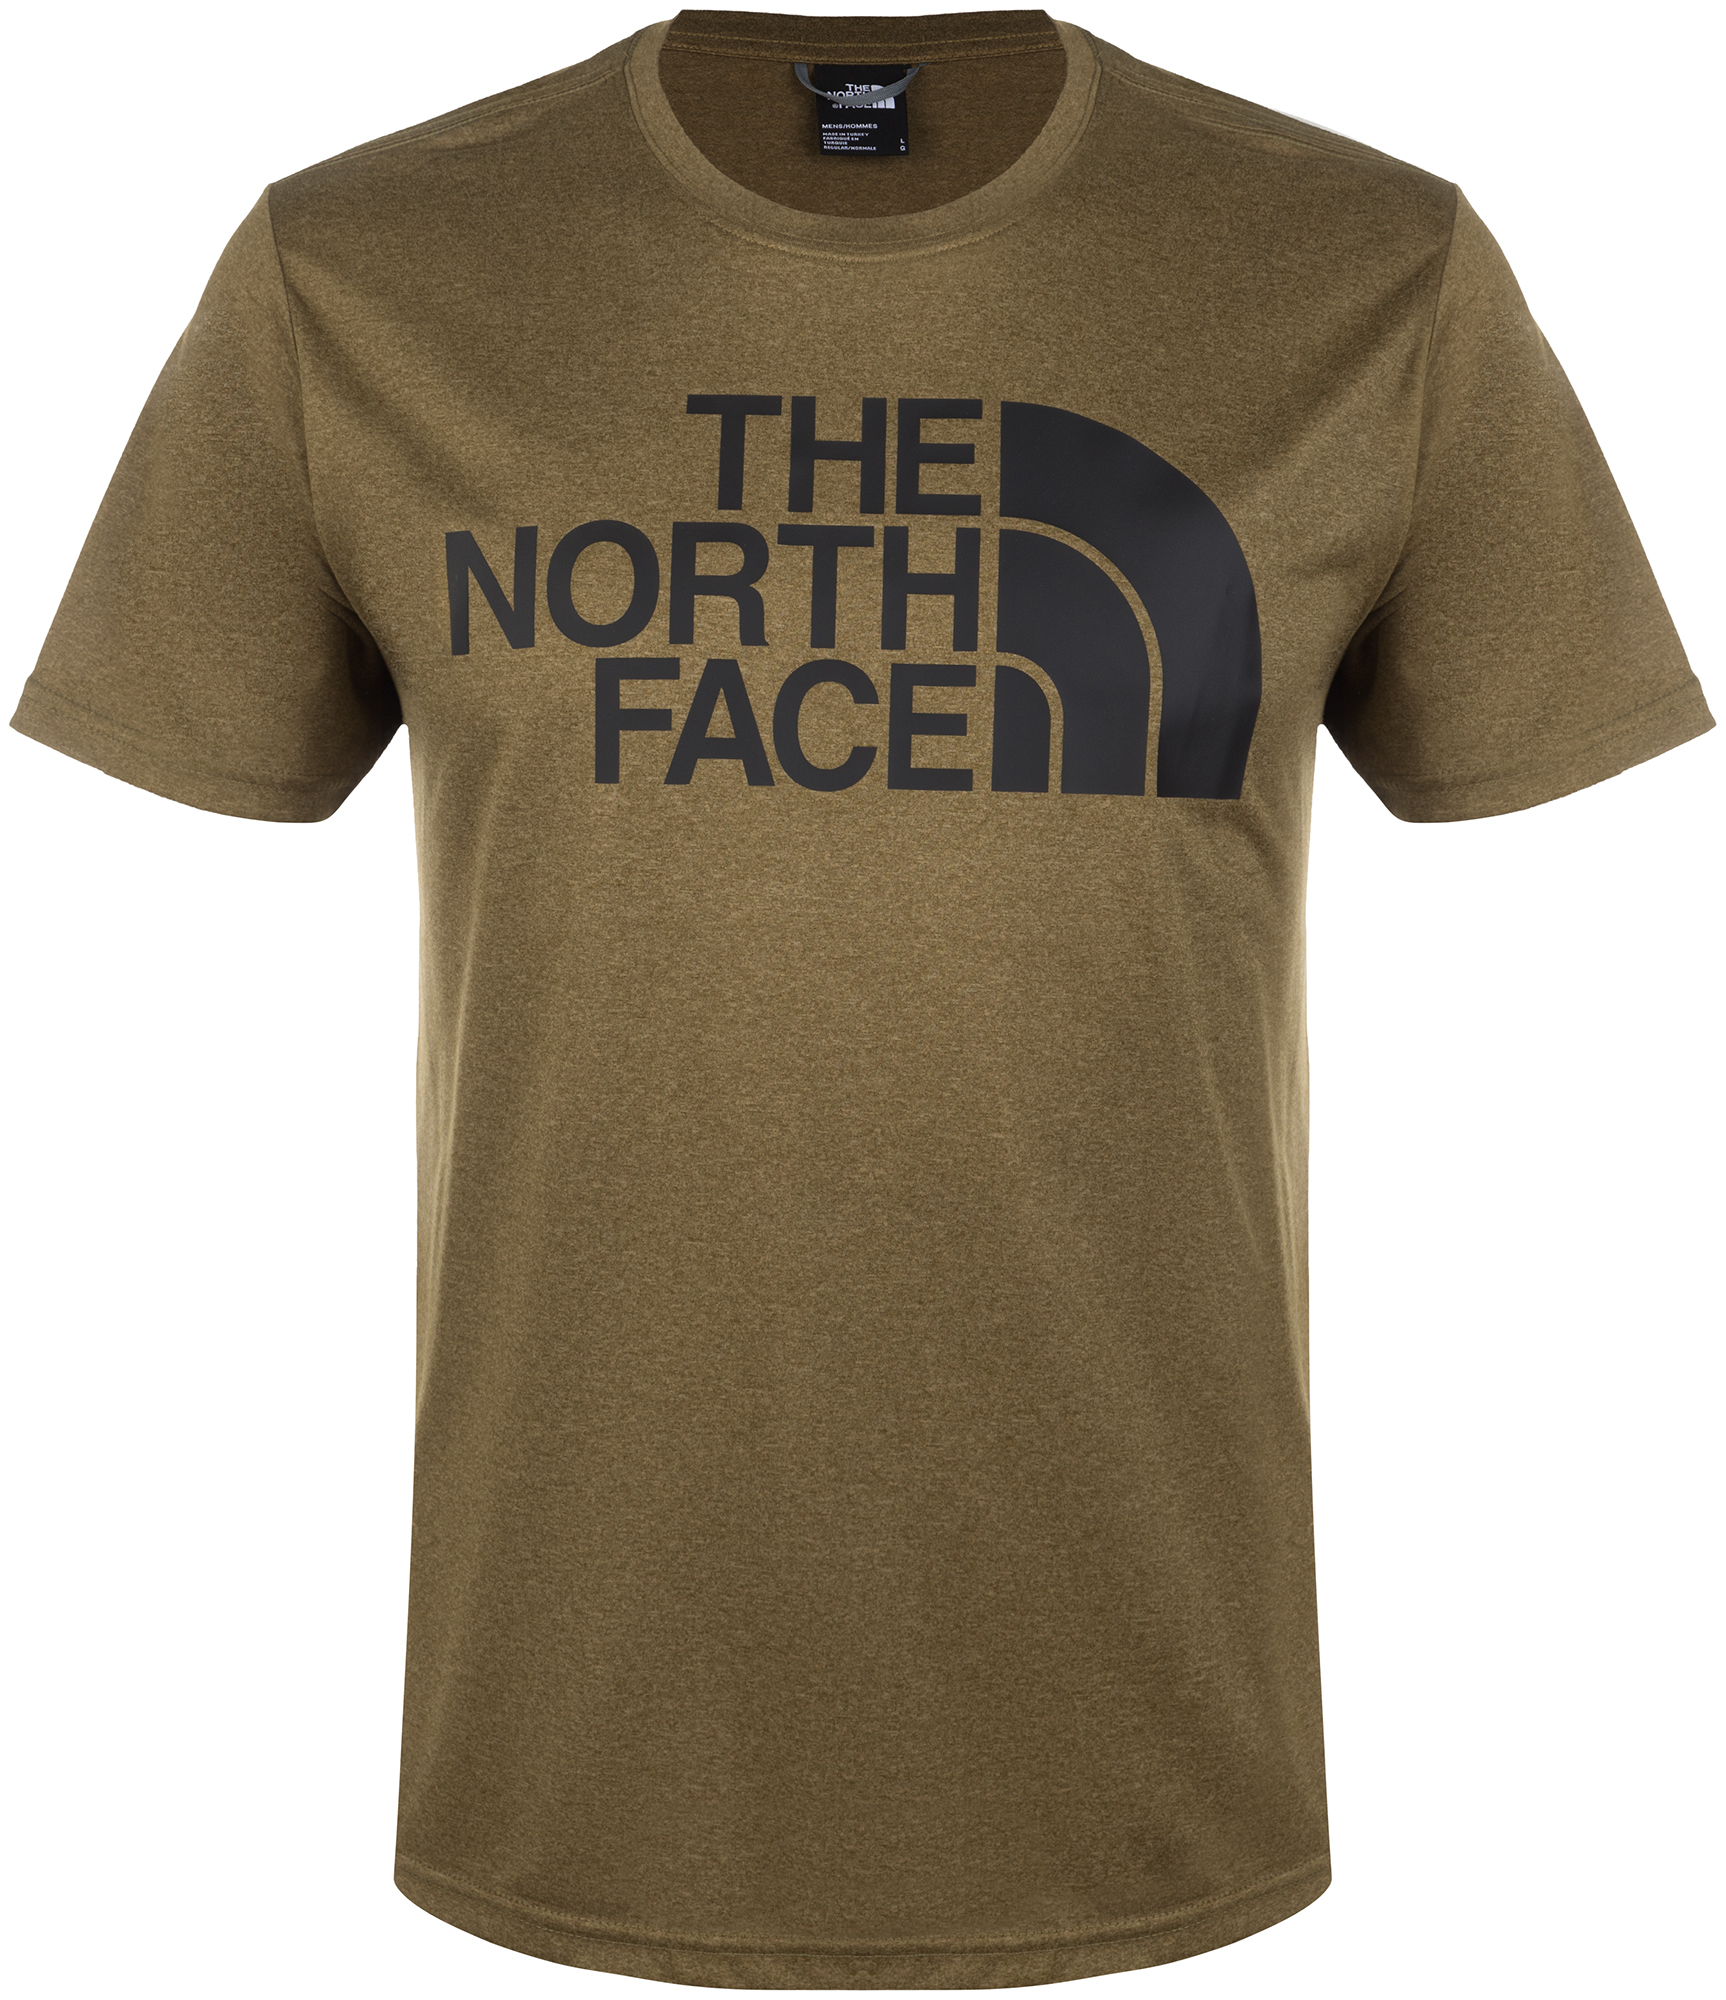 The North Face Футболка мужская The North Face Reaxion Easy, размер 48 недорого